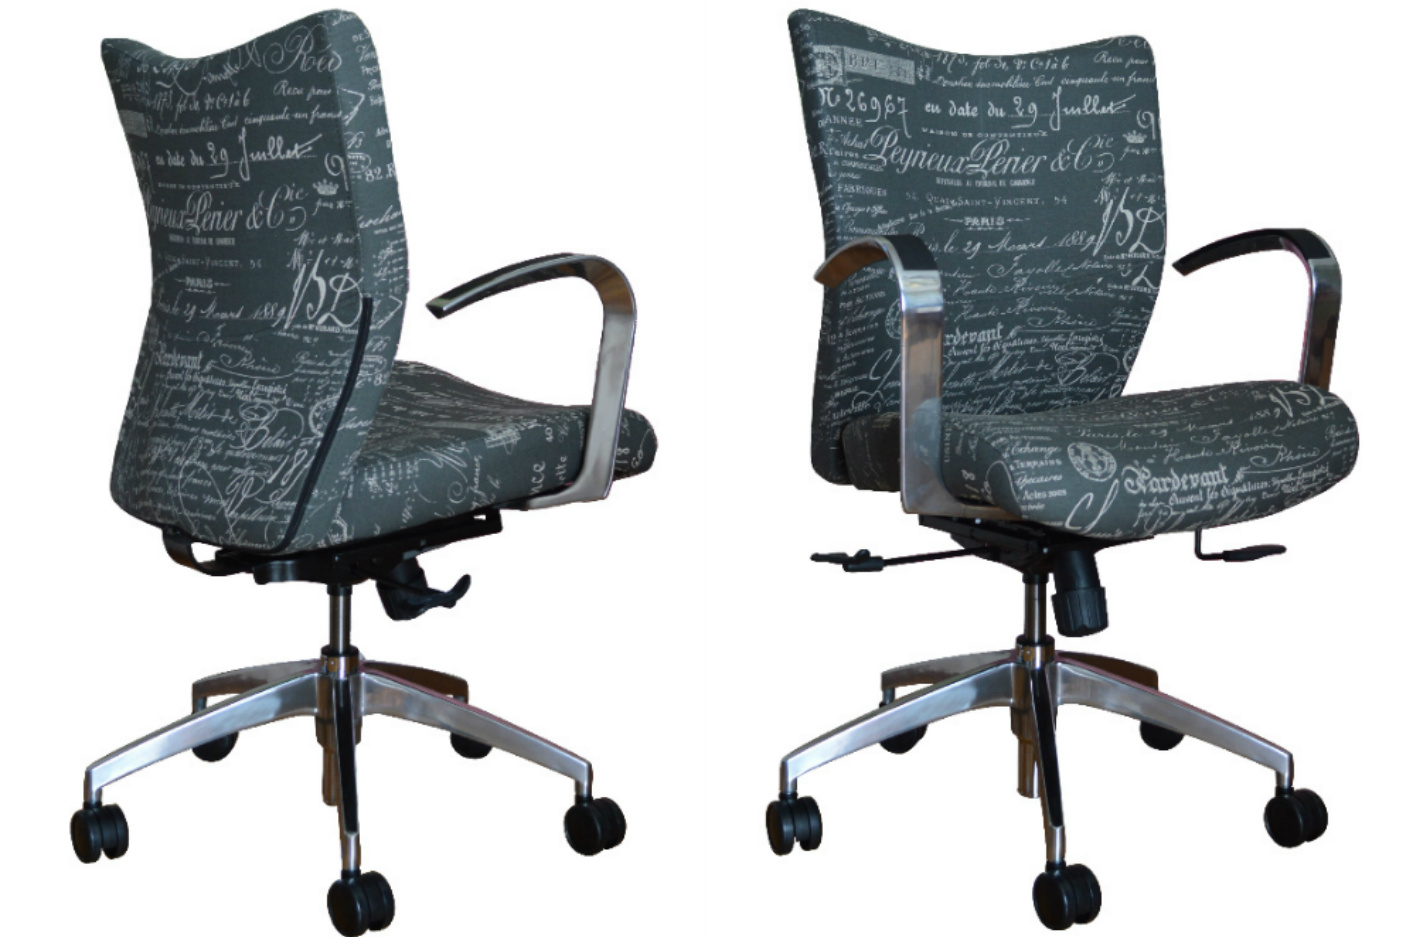 Upholstered desk chair - Our Bristol Office Chair Upholstered In A Gray Script Fabric